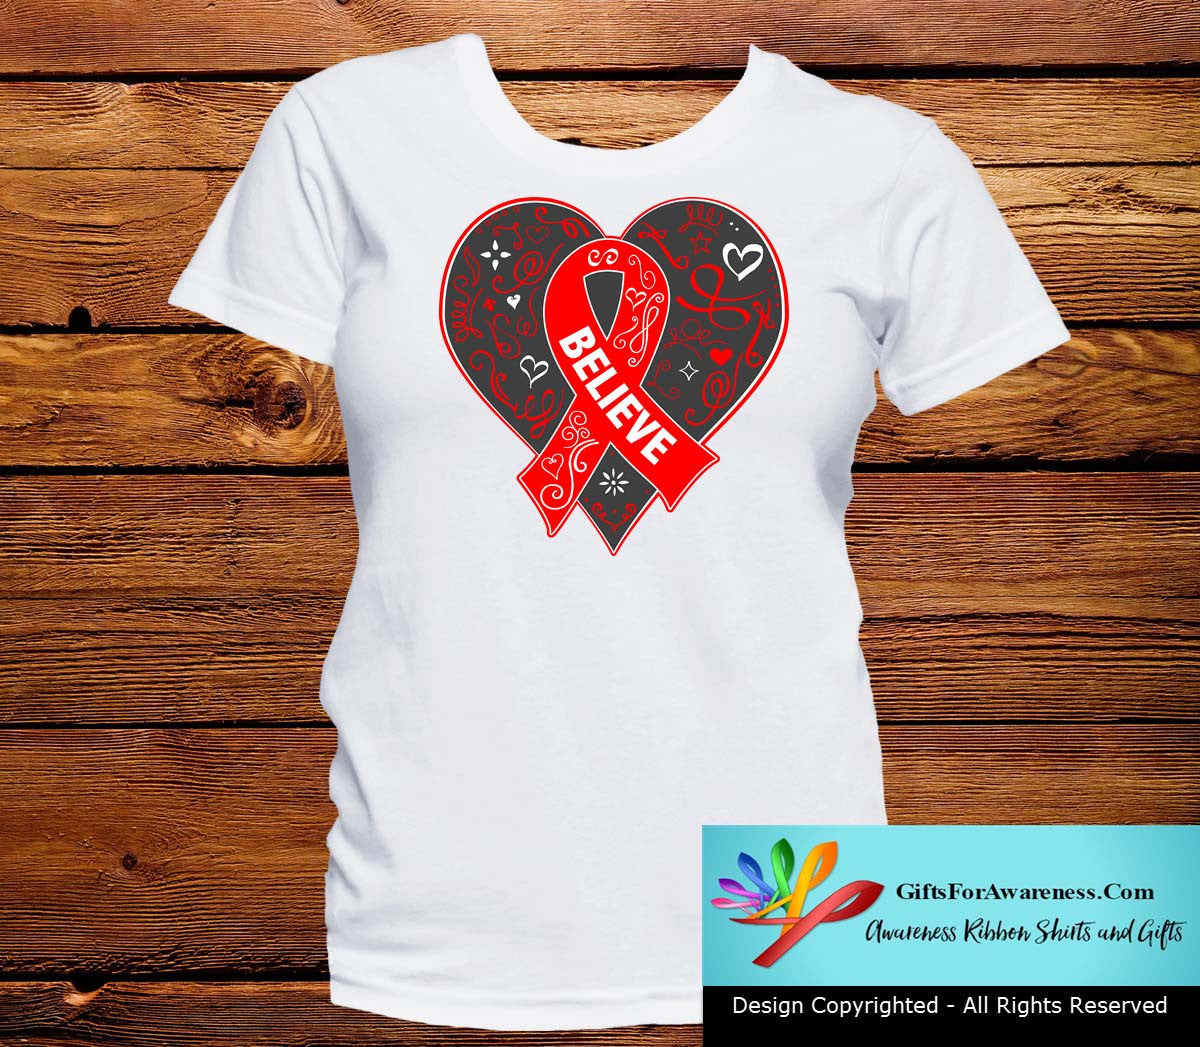 Heart Disease Believe Heart Ribbon Shirts - GiftsForAwareness